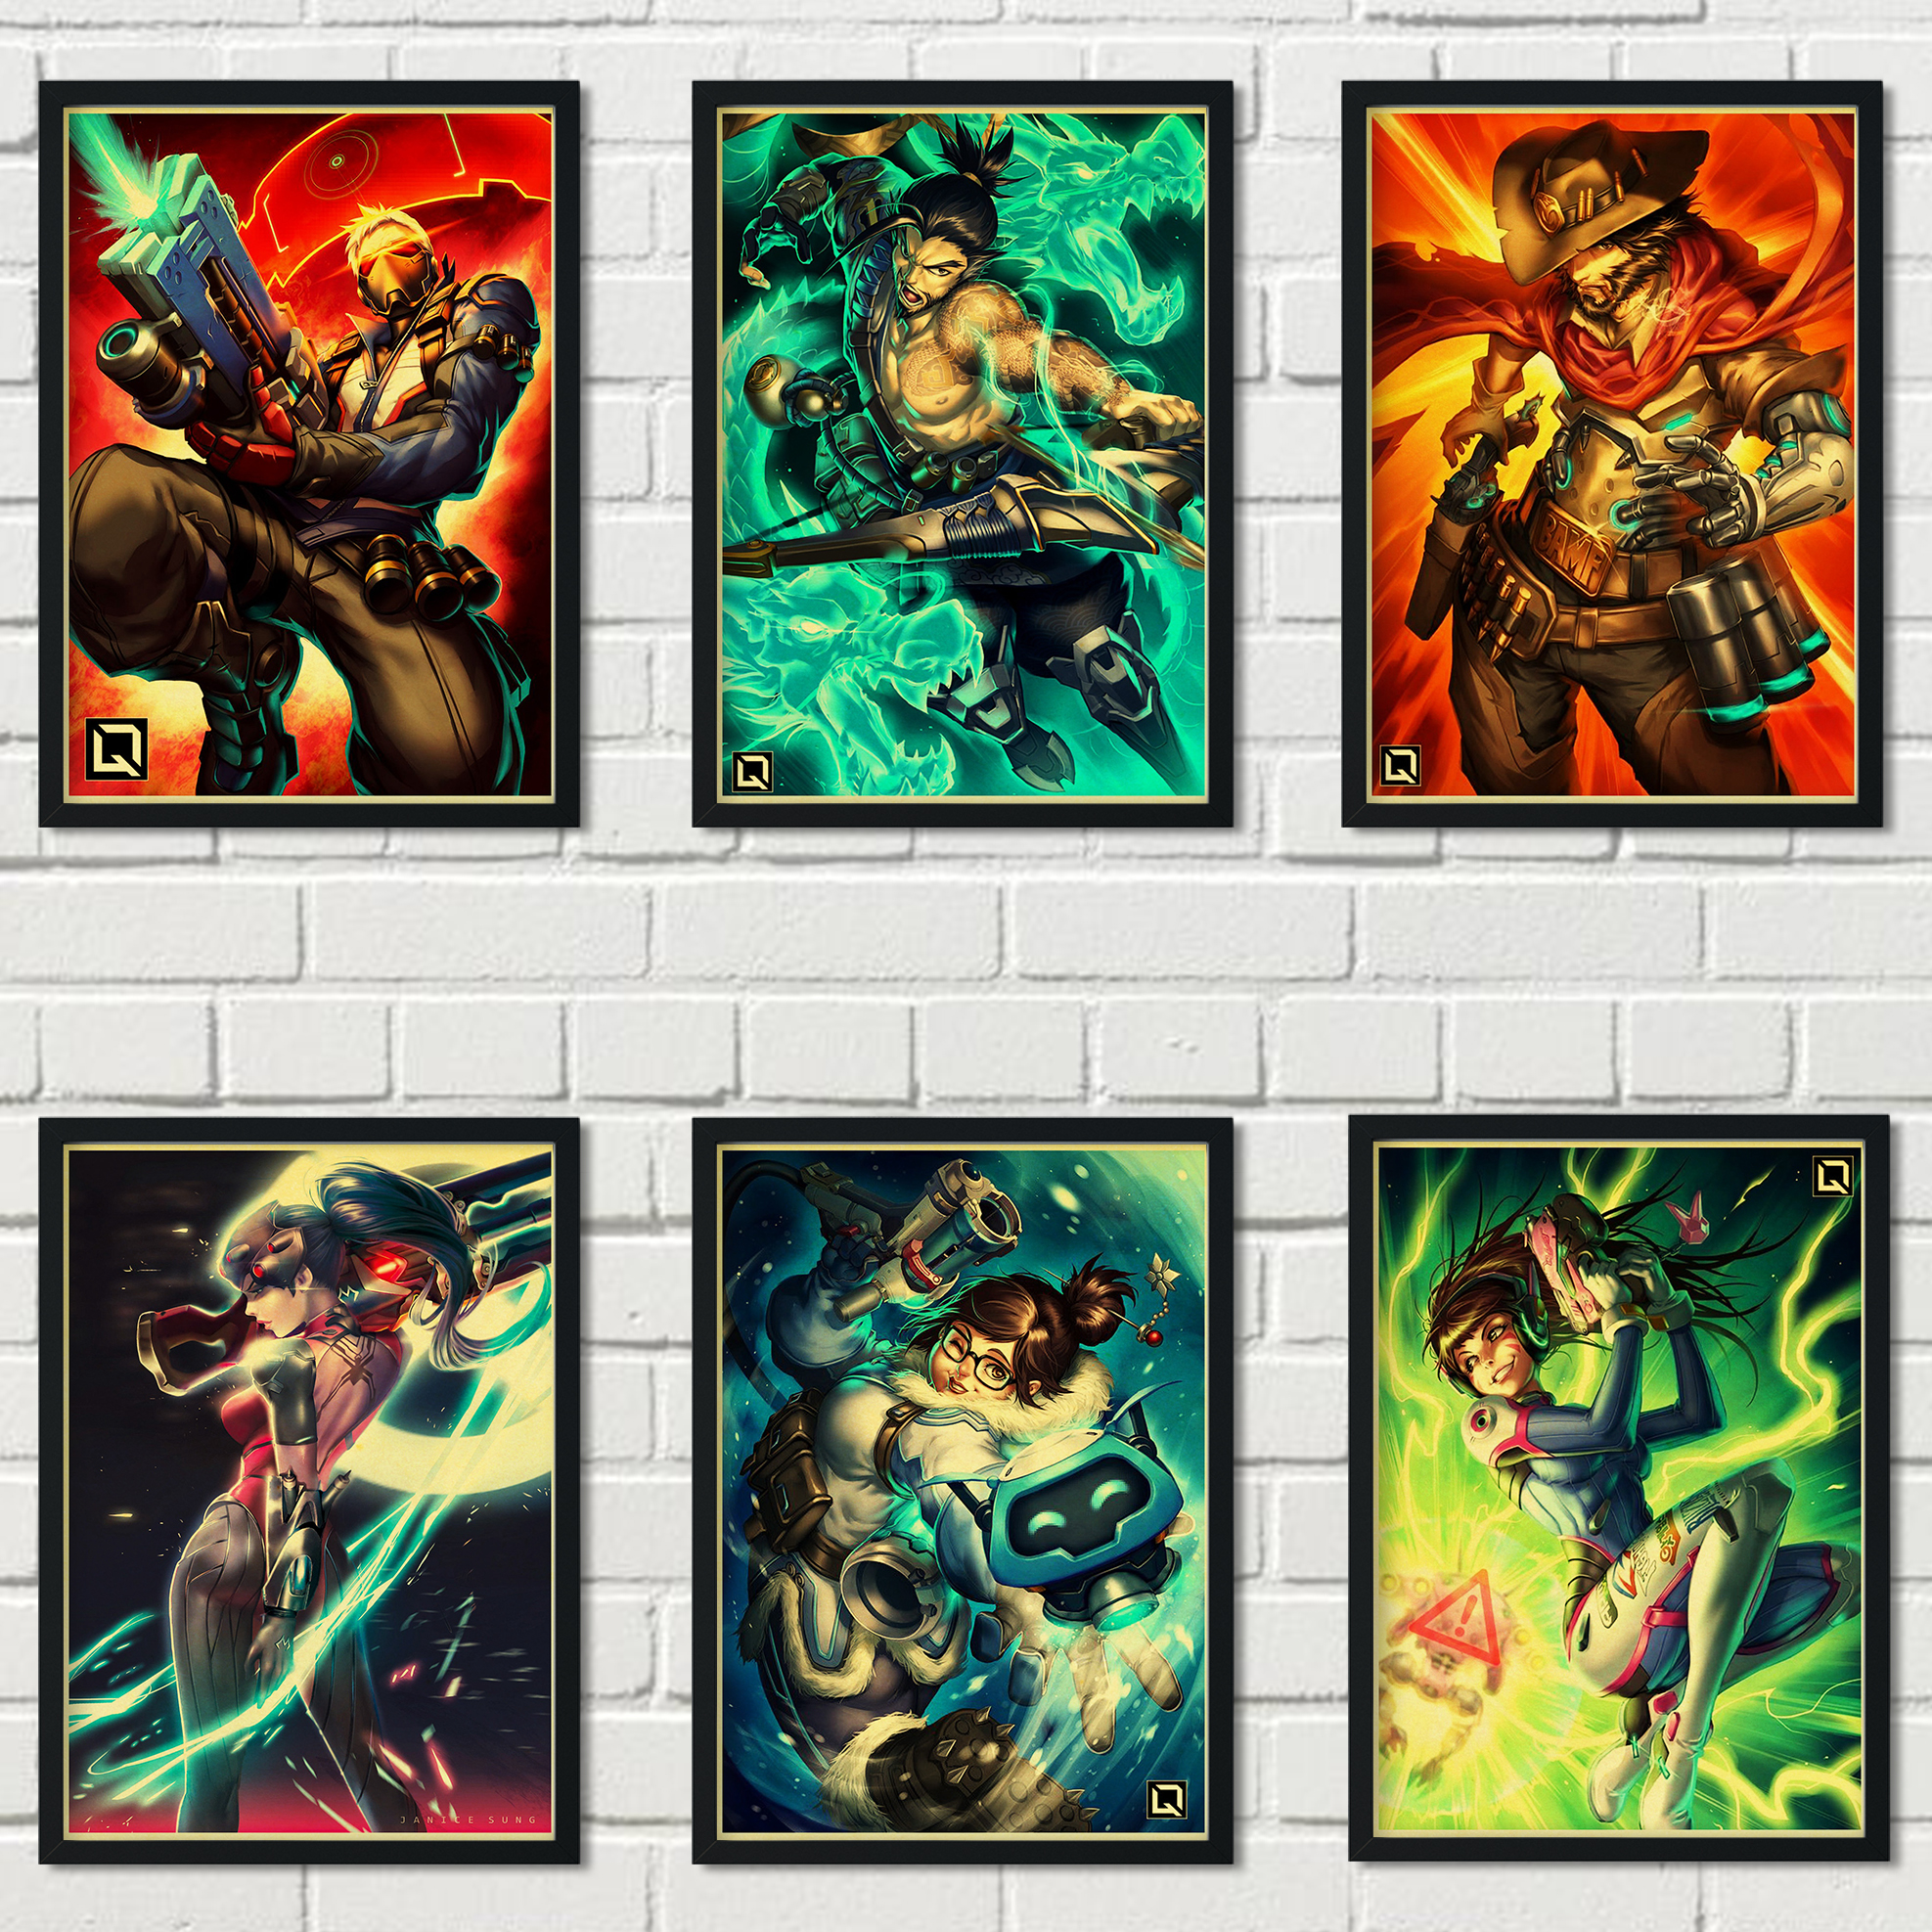 Retro kraft paper poster art deco painting popular multiplayer game Overwatch family wall art deco poster a57 image